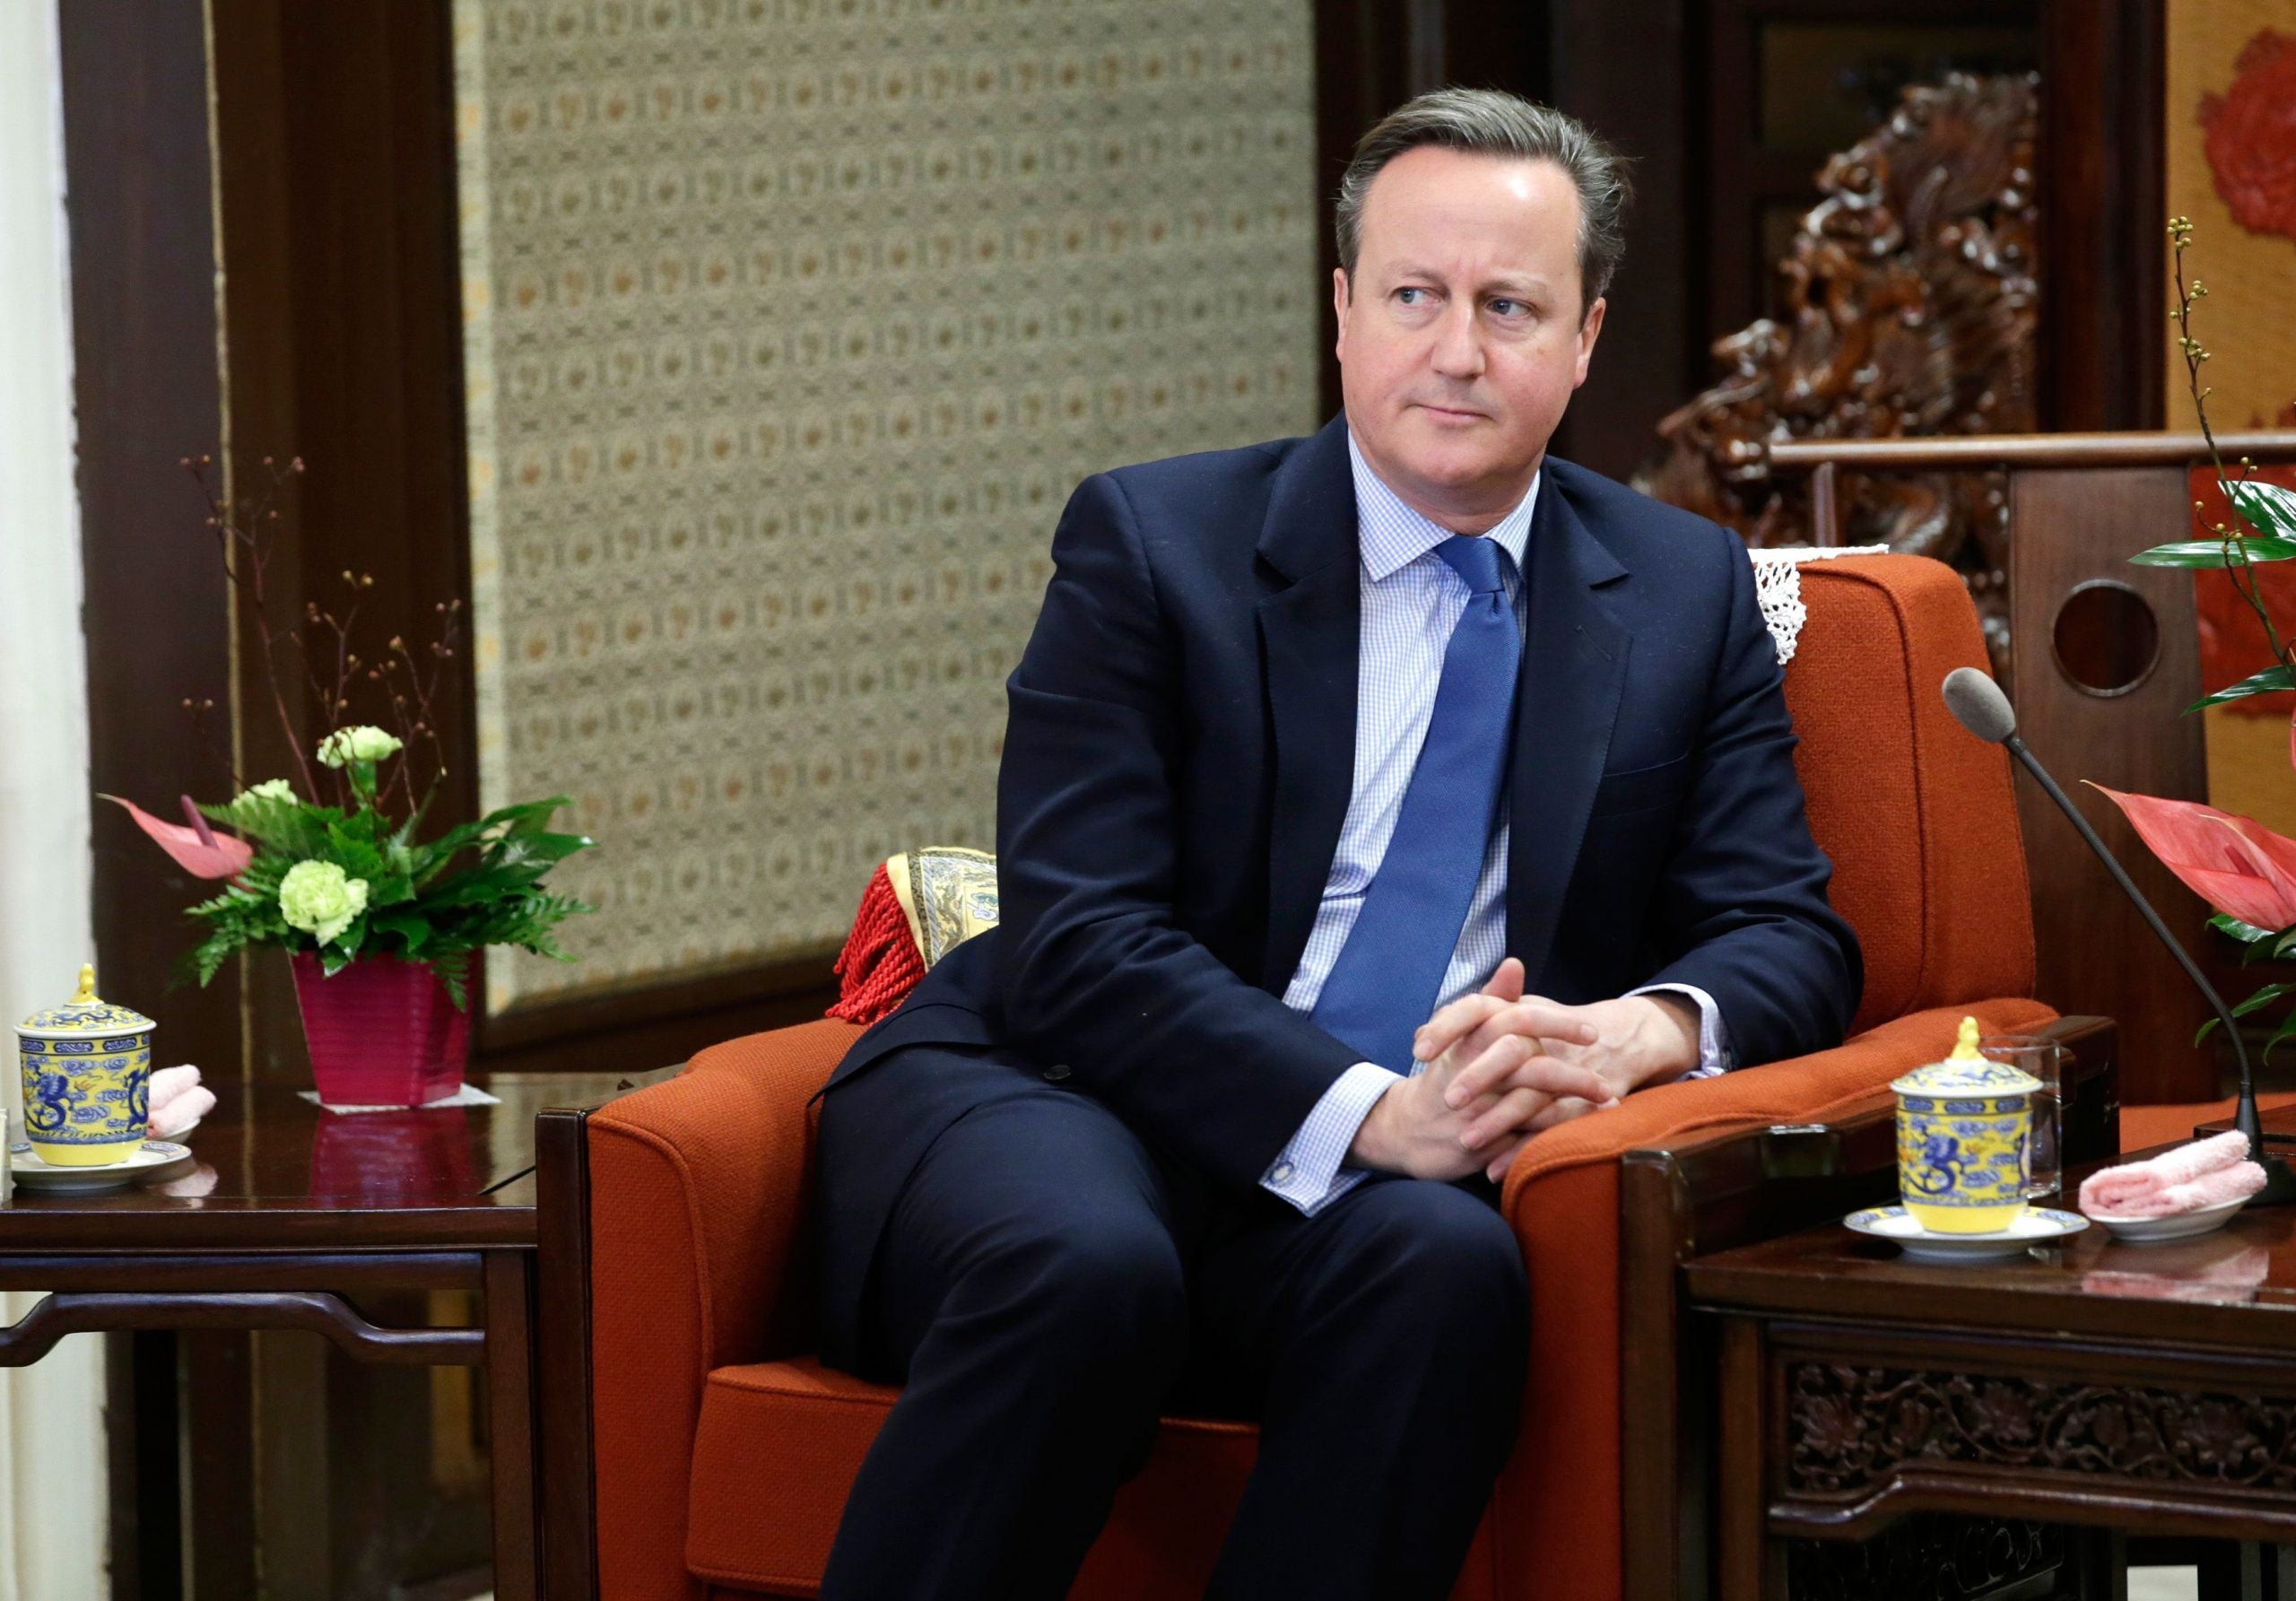 Commons Confidential: Dodgy Dave lies low in Davos